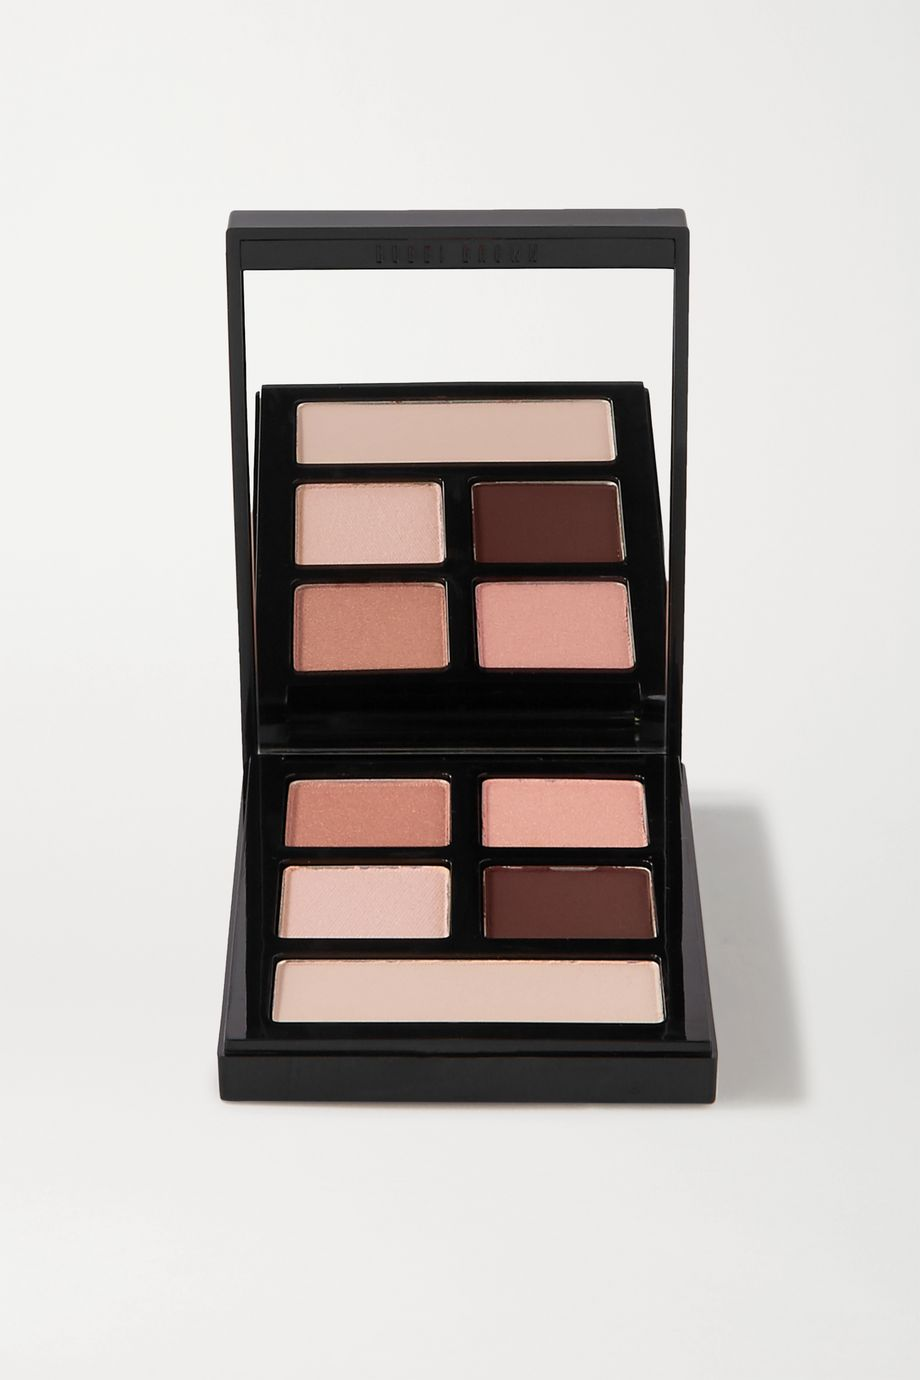 Bobbi Brown The Essential Multicolor Eye Shadow Palette – Into The Sunset – Lidschattenpalette